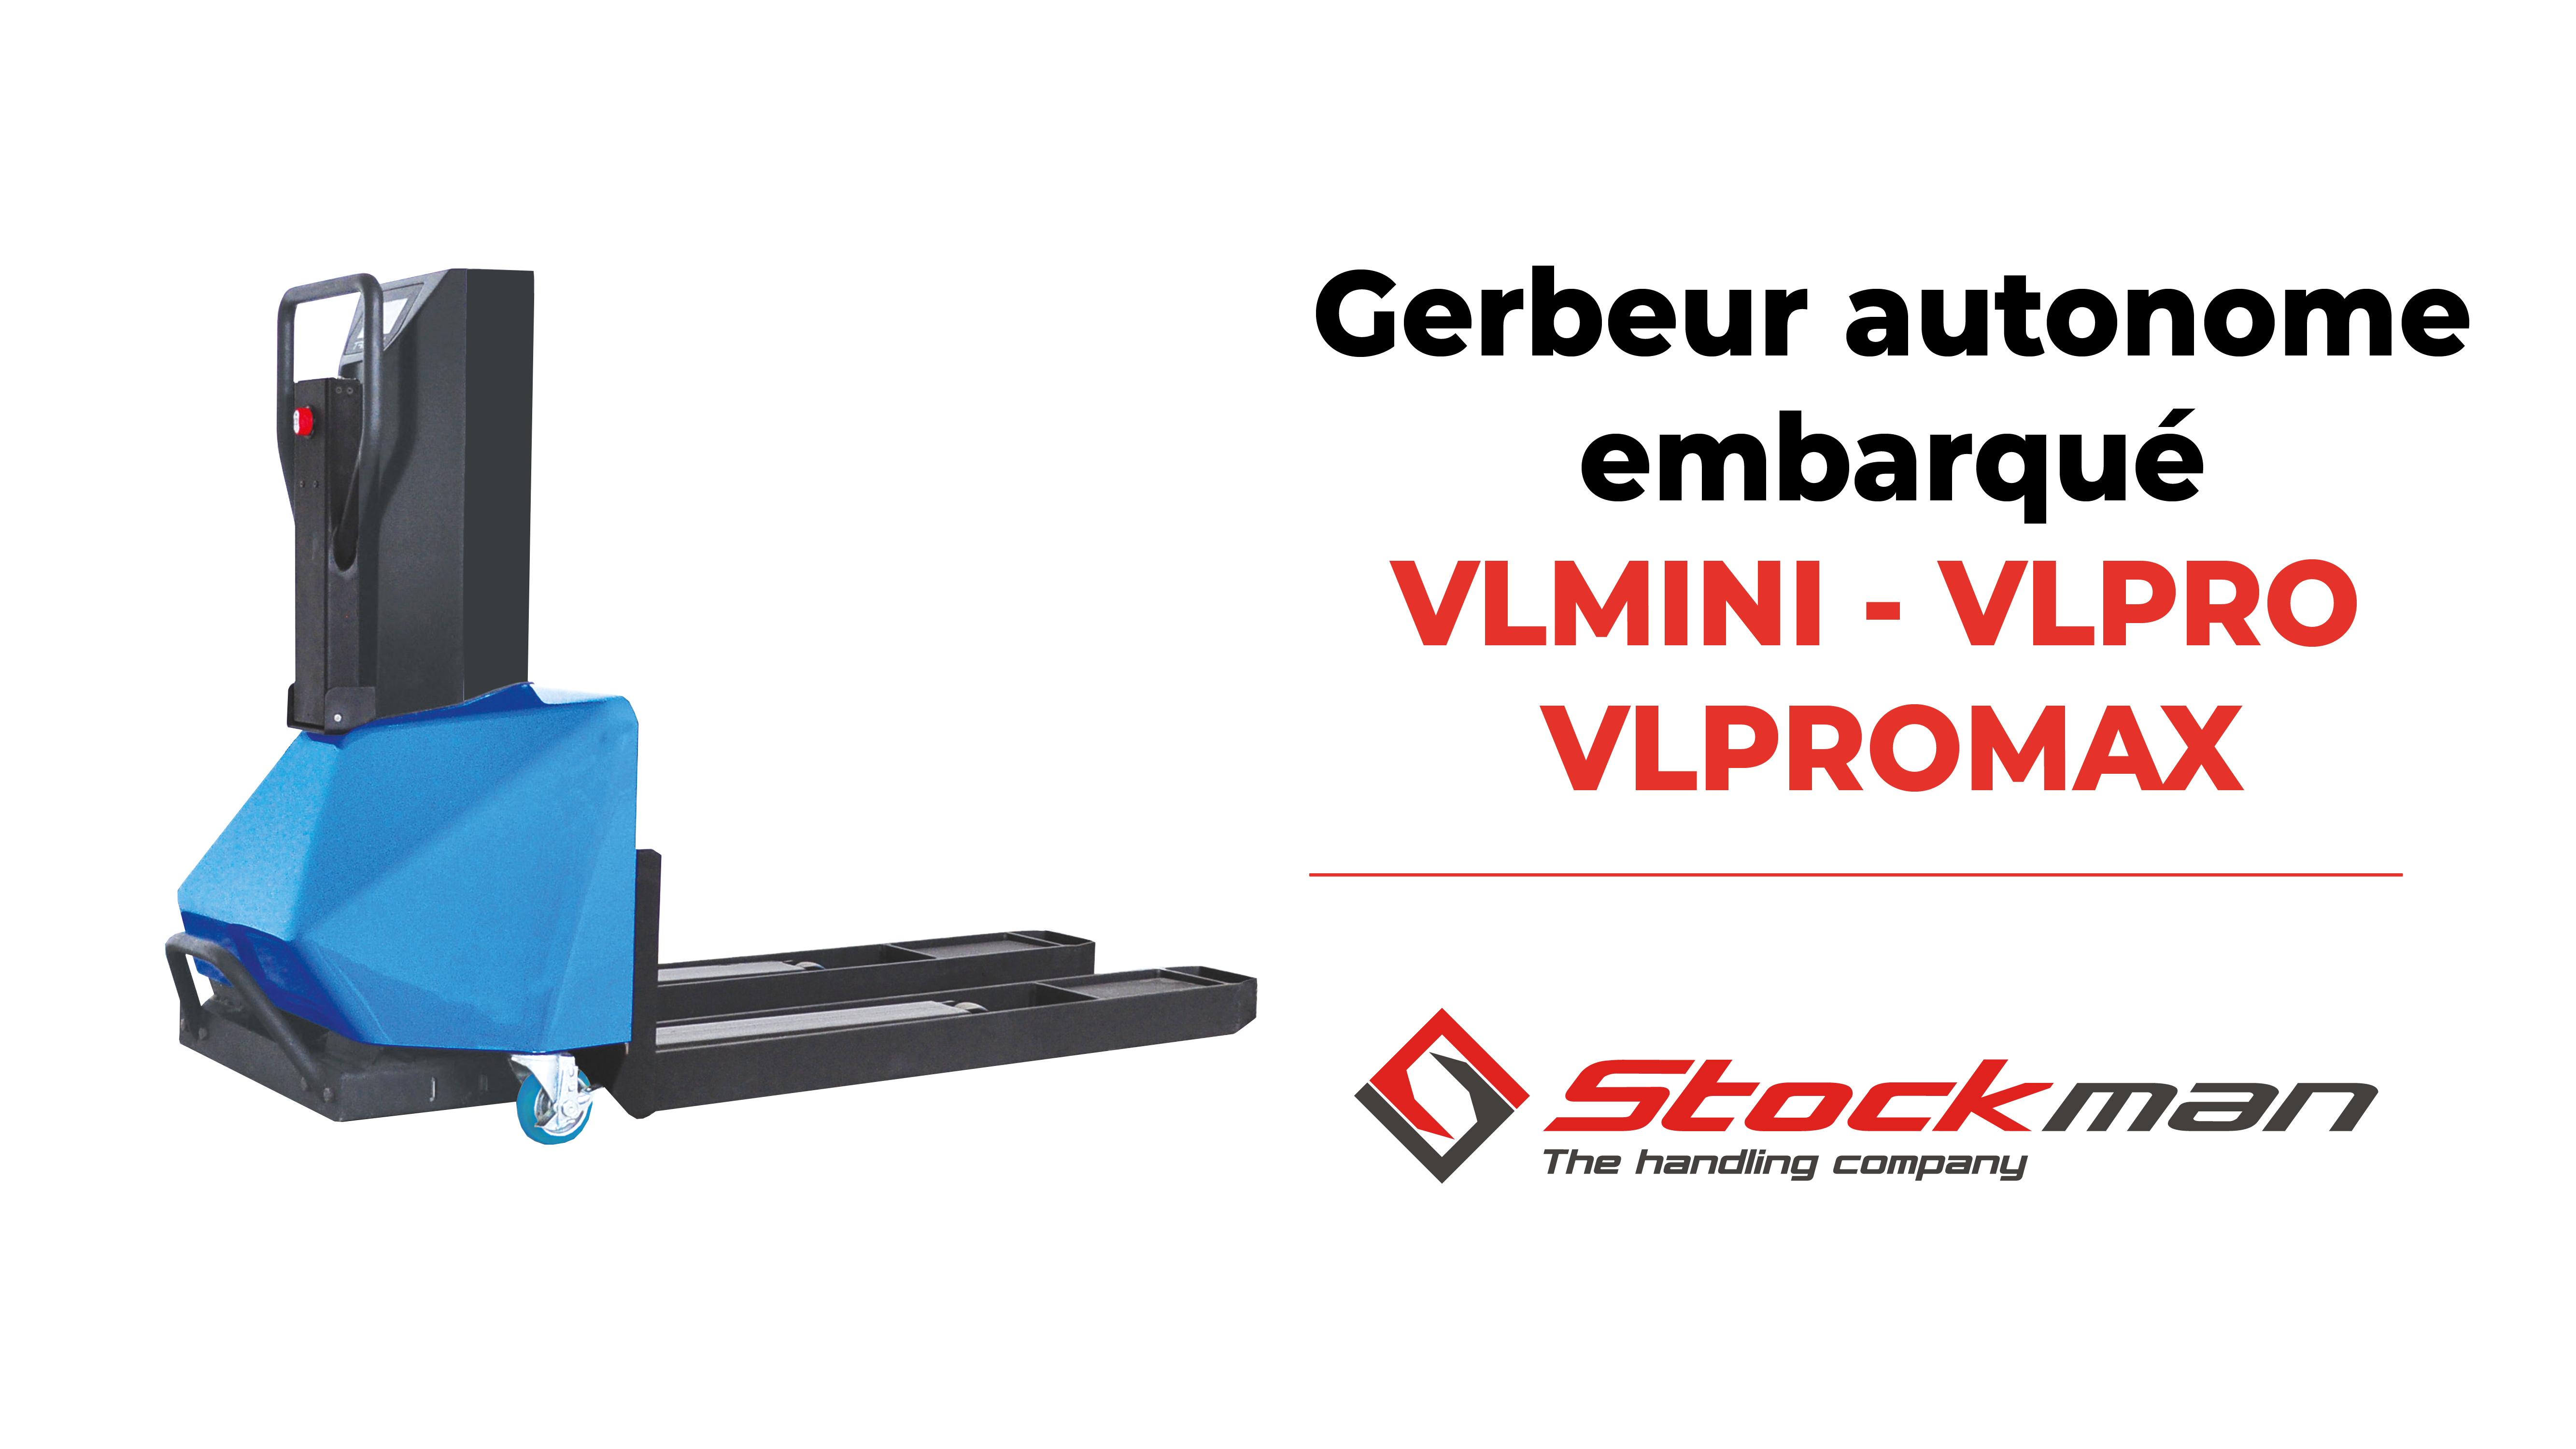 The self-lifting Stacker with 550 kg load capacity : VLMINI, VLPRO and VLPROMAX